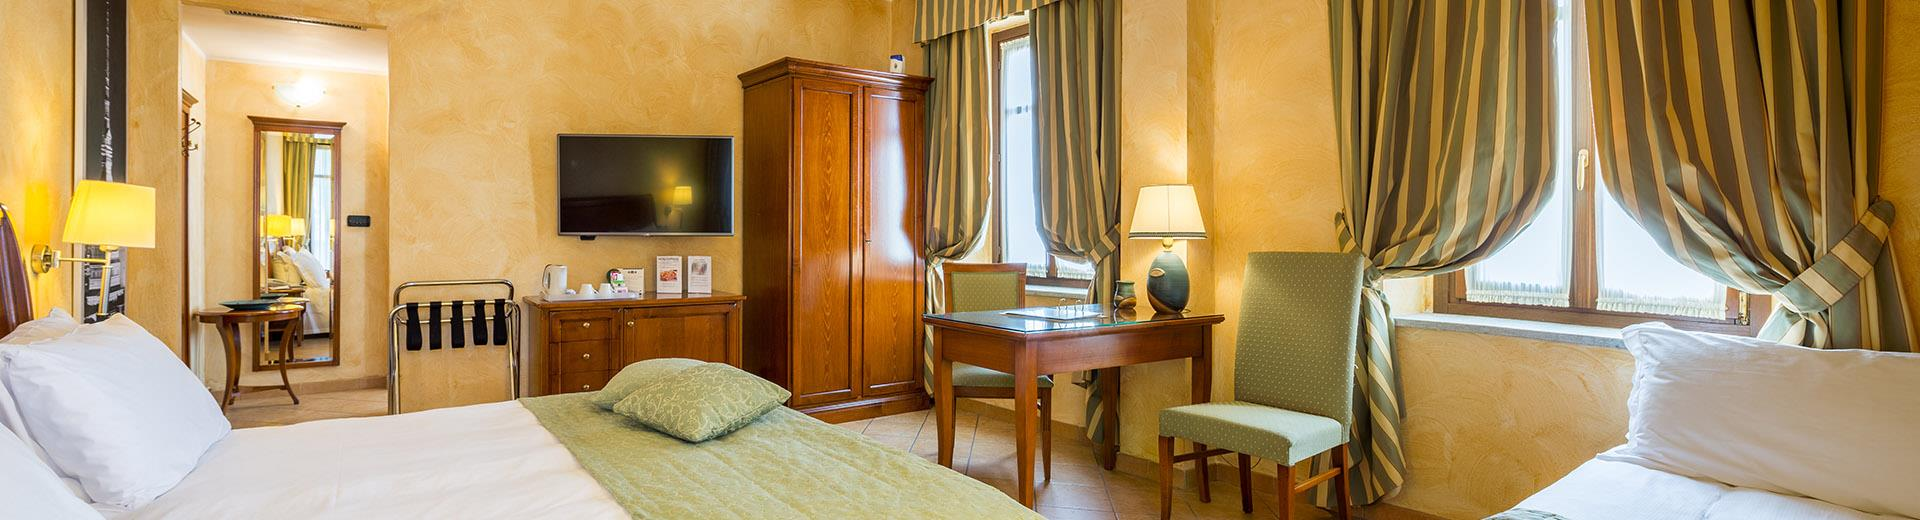 Sober and elegant, the rooms of the Best Western Plus Hotel Le Rondini Turin reflect the style of the old farmhouse and make your stay an unforgettable experience.